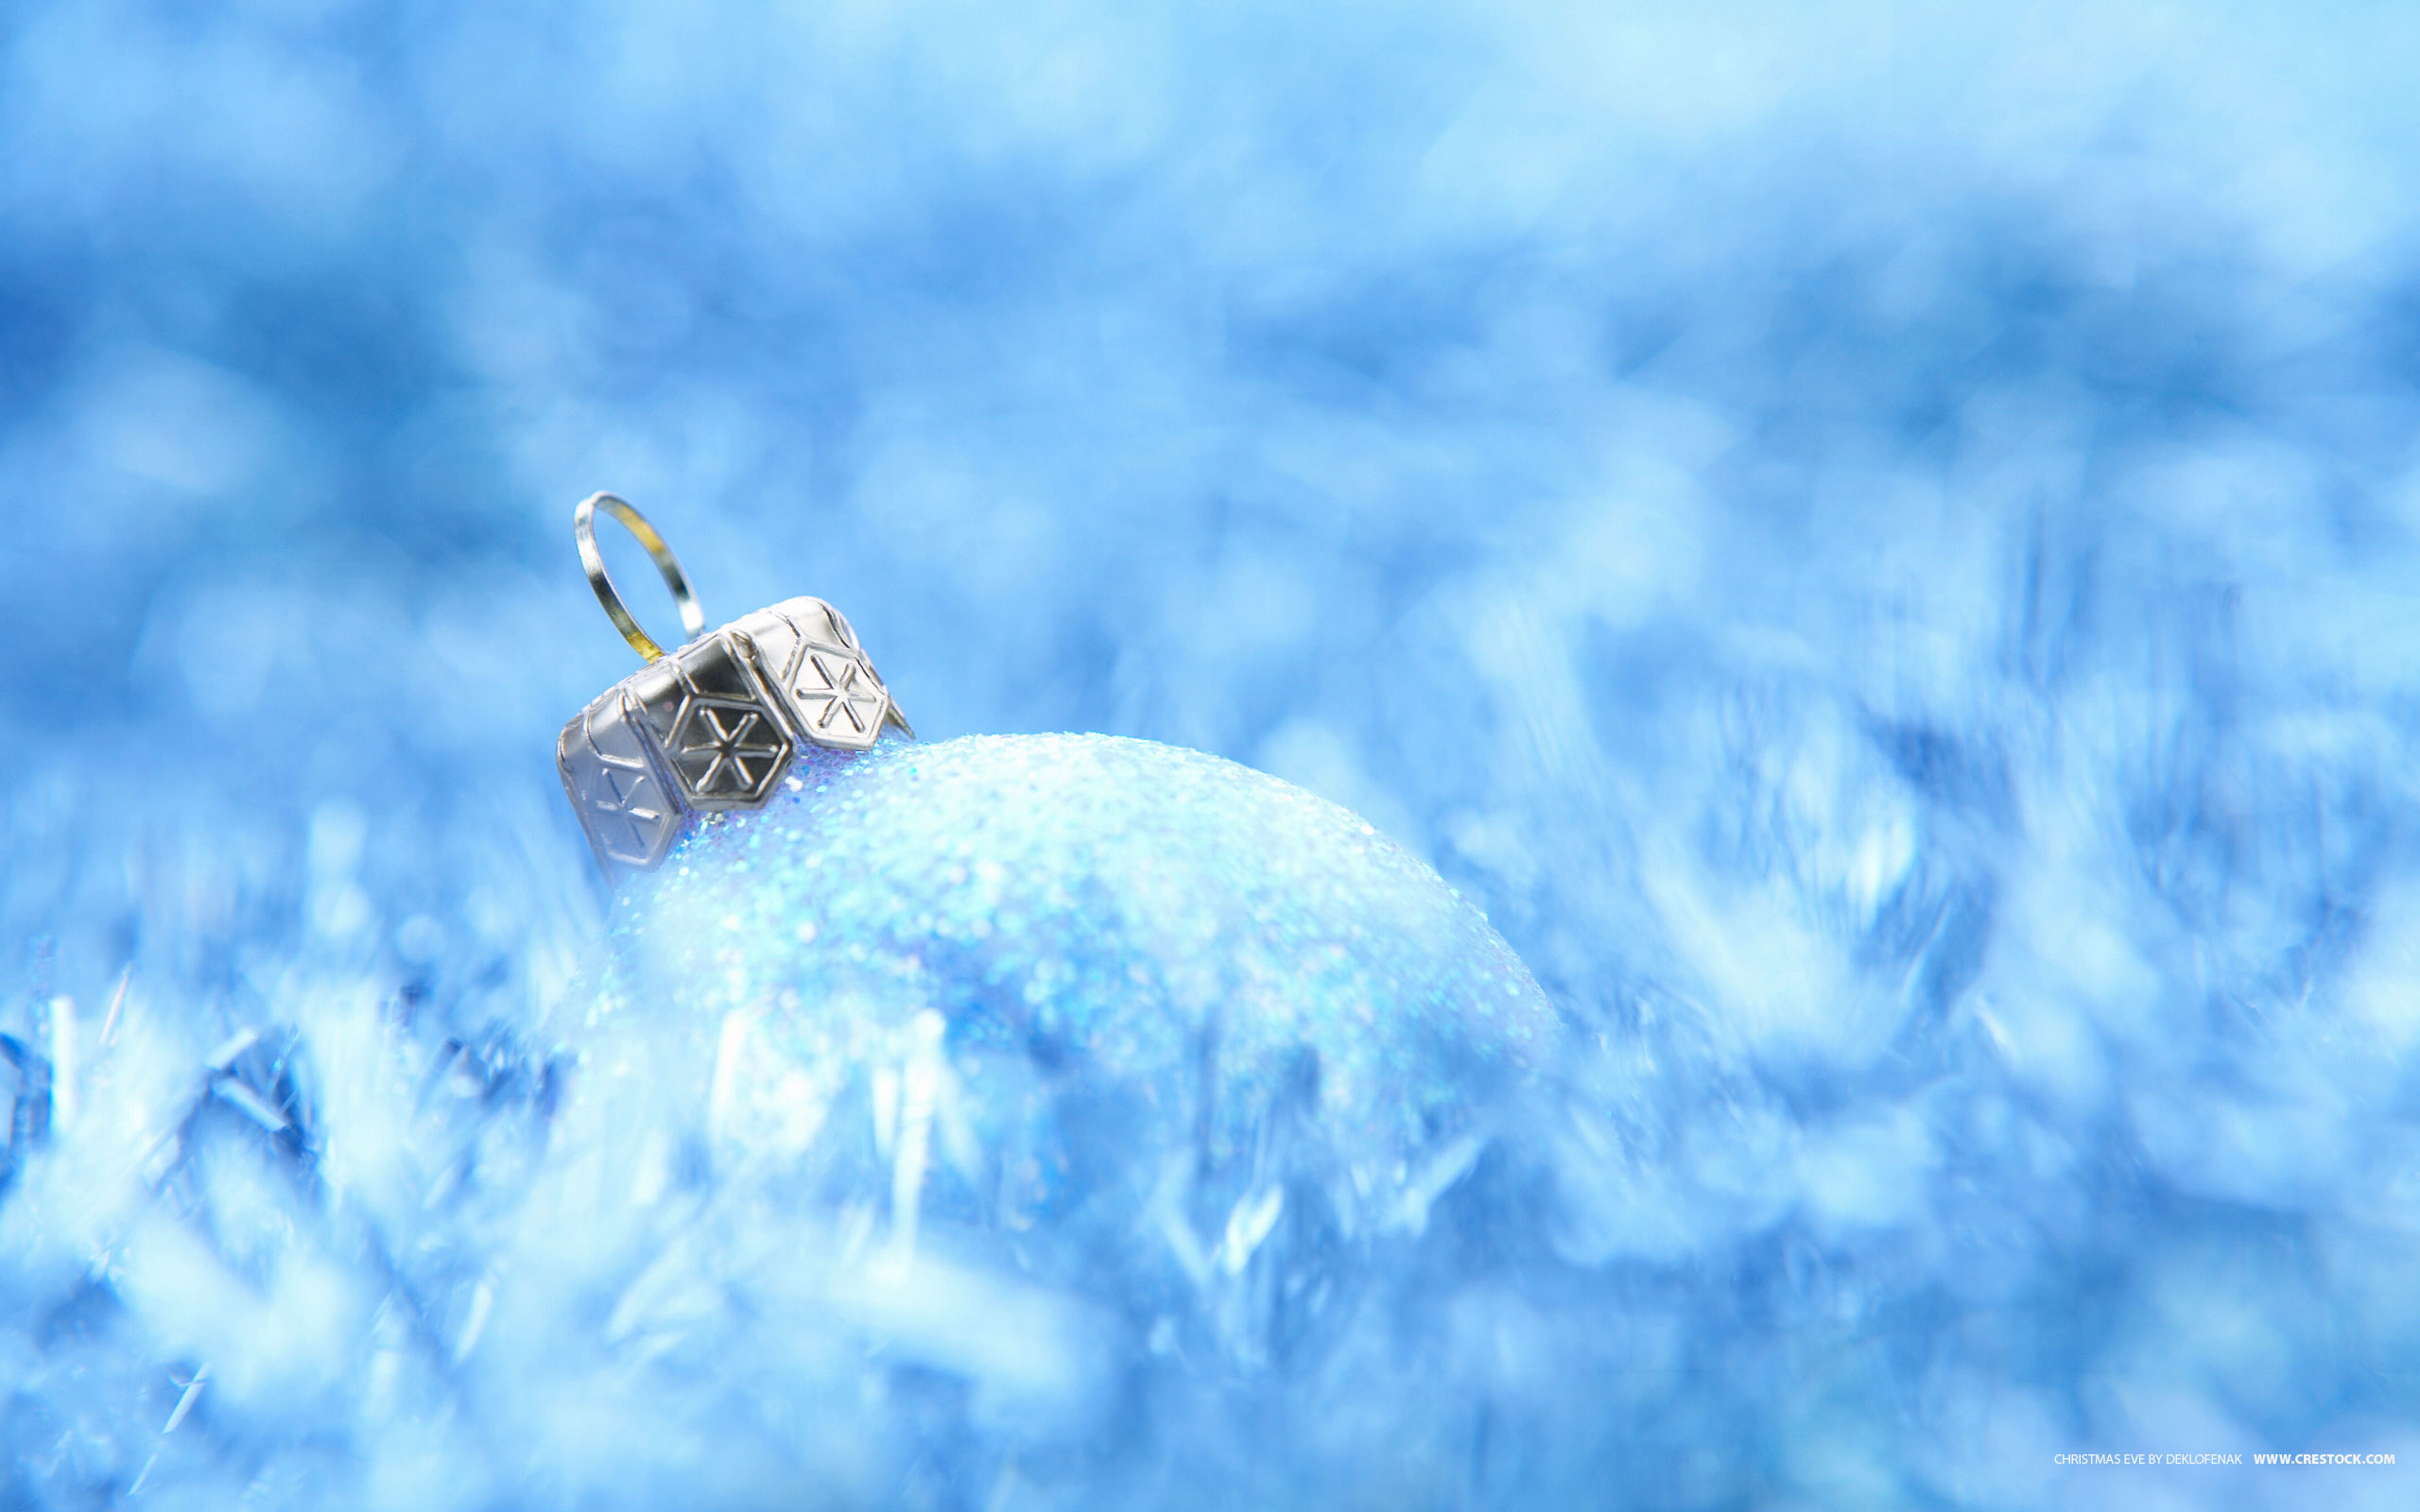 16 Stunning High Resolution Christmas Wallpapers Crestock Com Blog